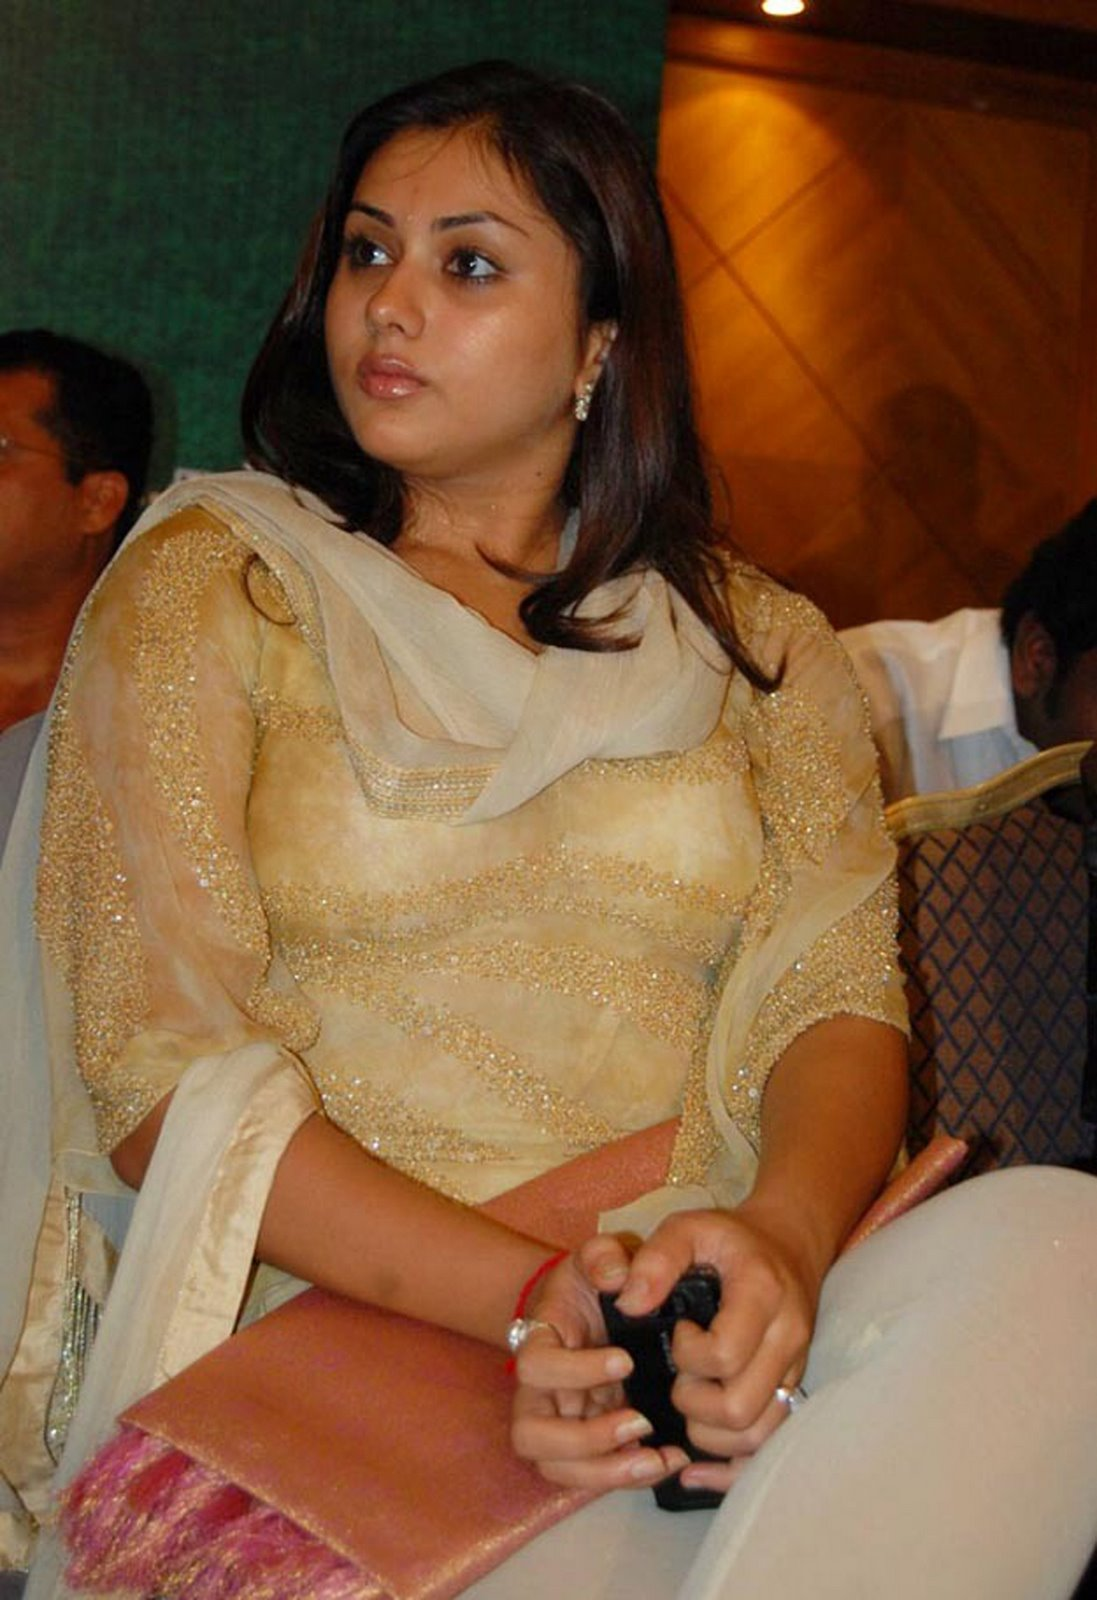 namitha very hot in transparent dress bra and thighs visible